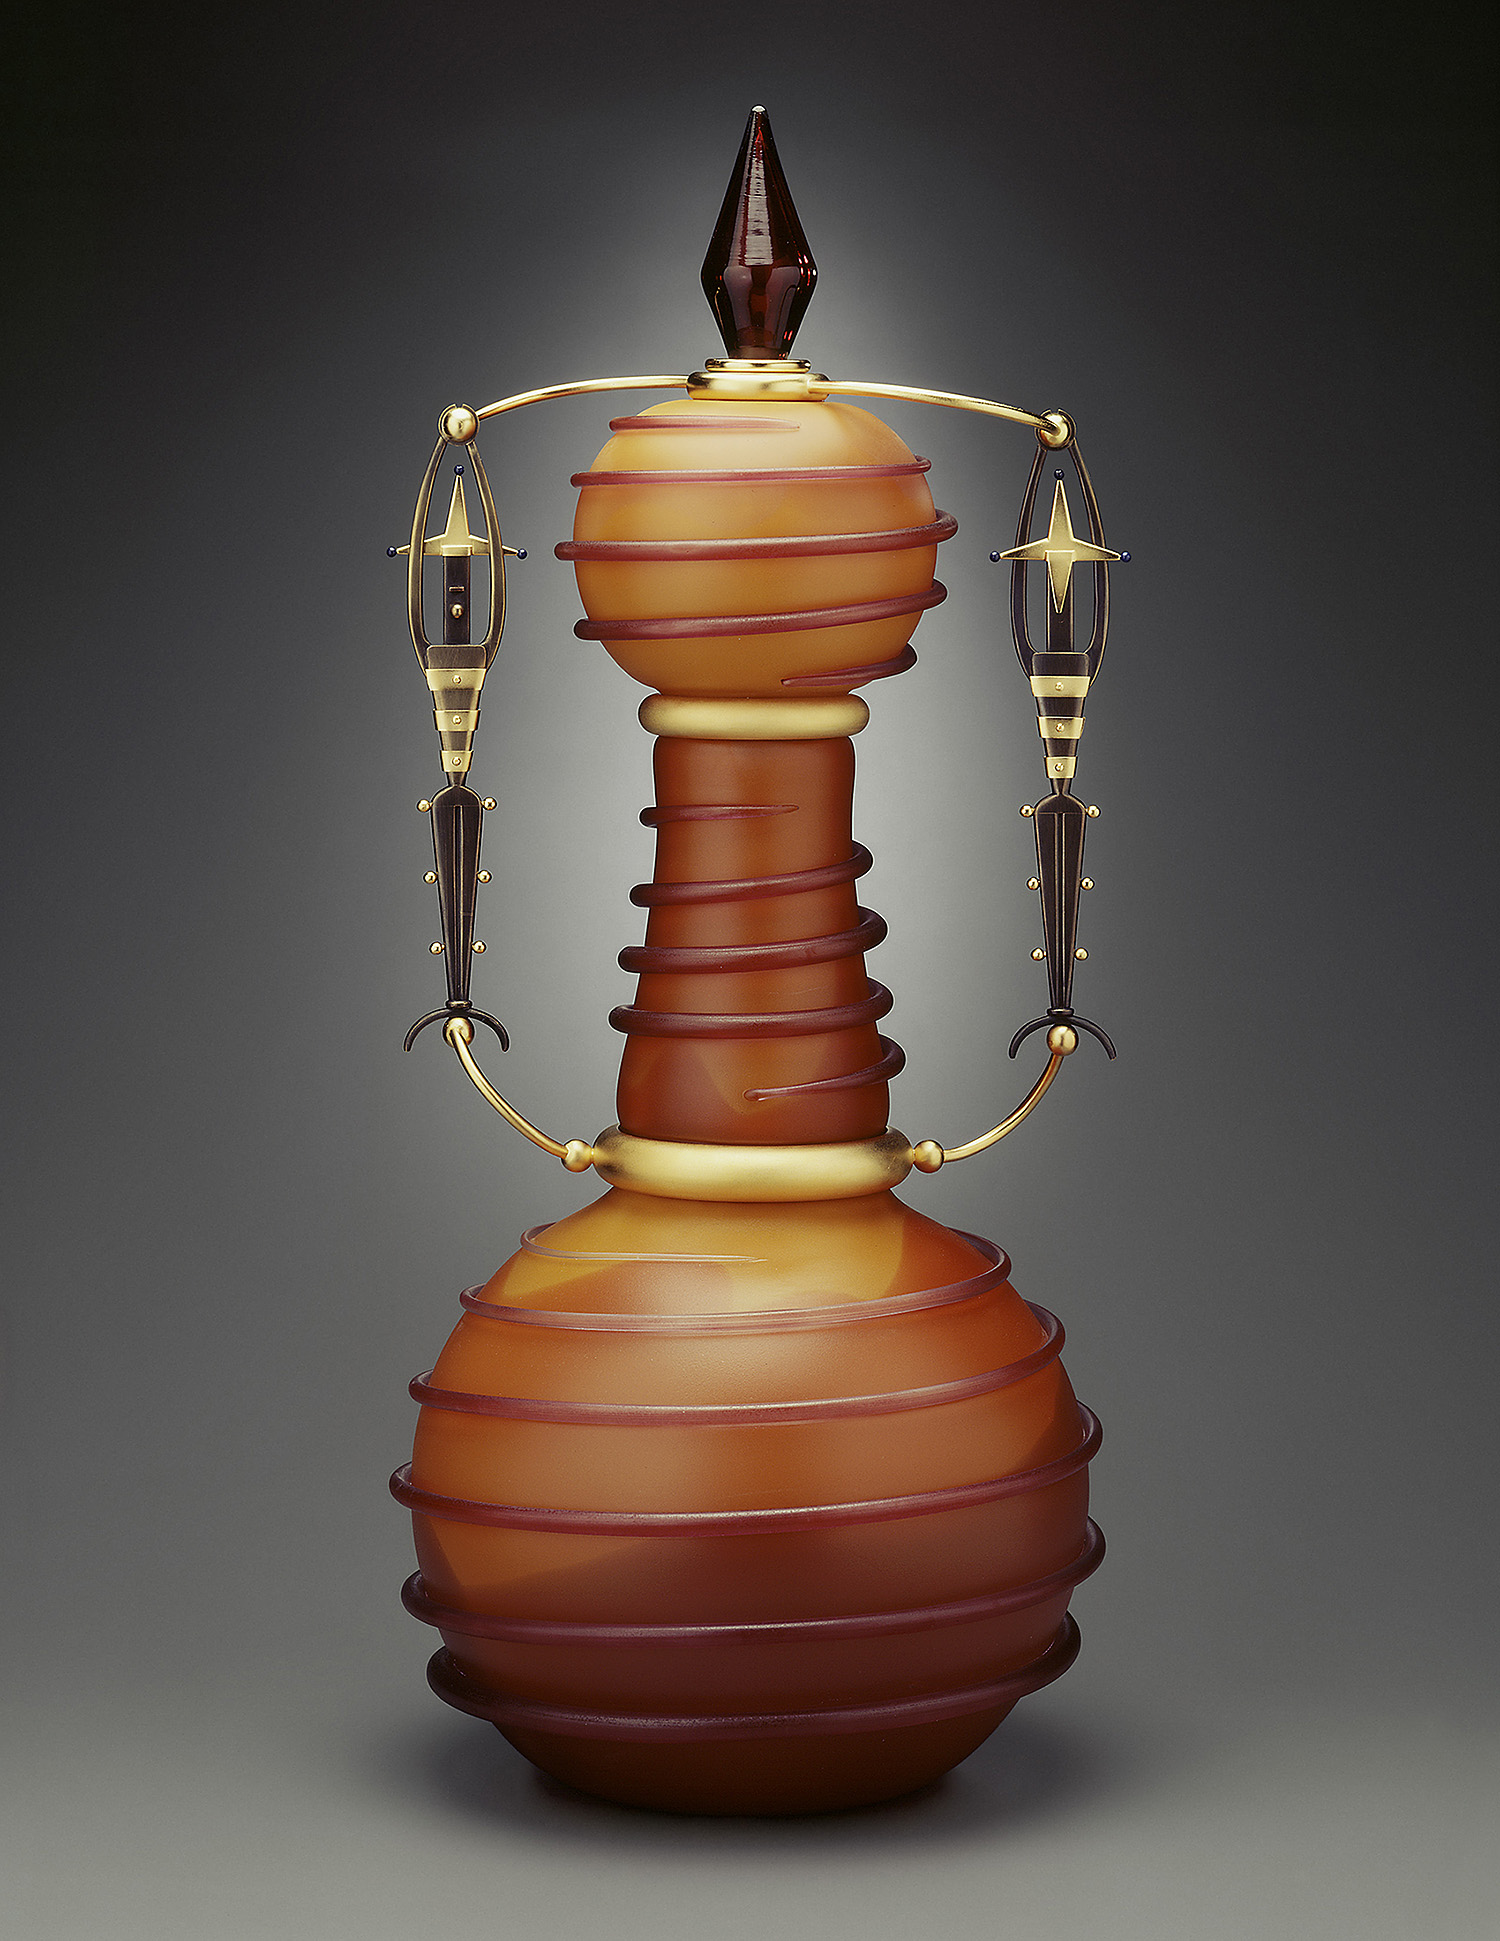 Two Jesters   1996. Blown glass, bronze and gold-plated bronze. 30 x 13½ x 12½""